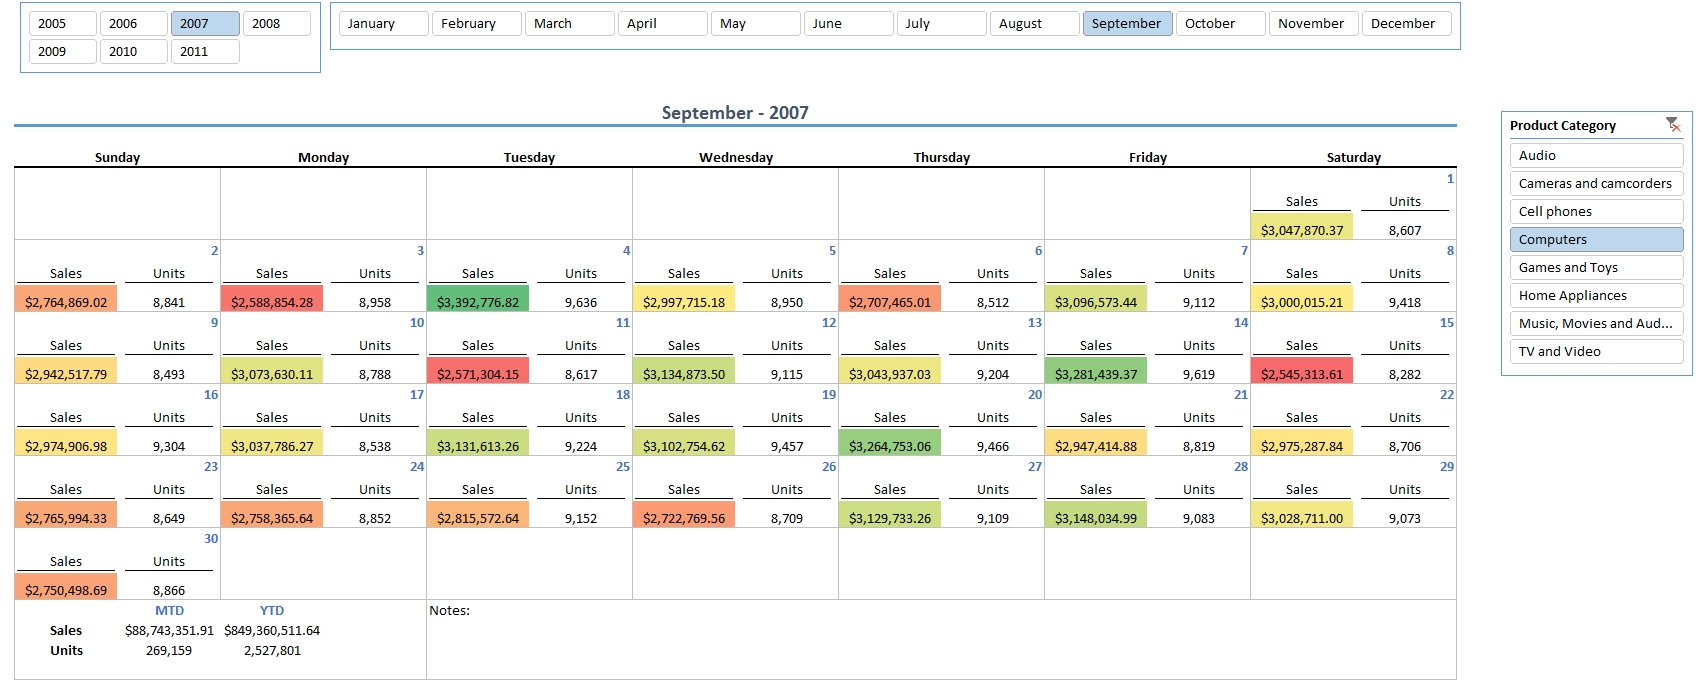 Calendar Reporting With Excel And Power Pivot | Analysis